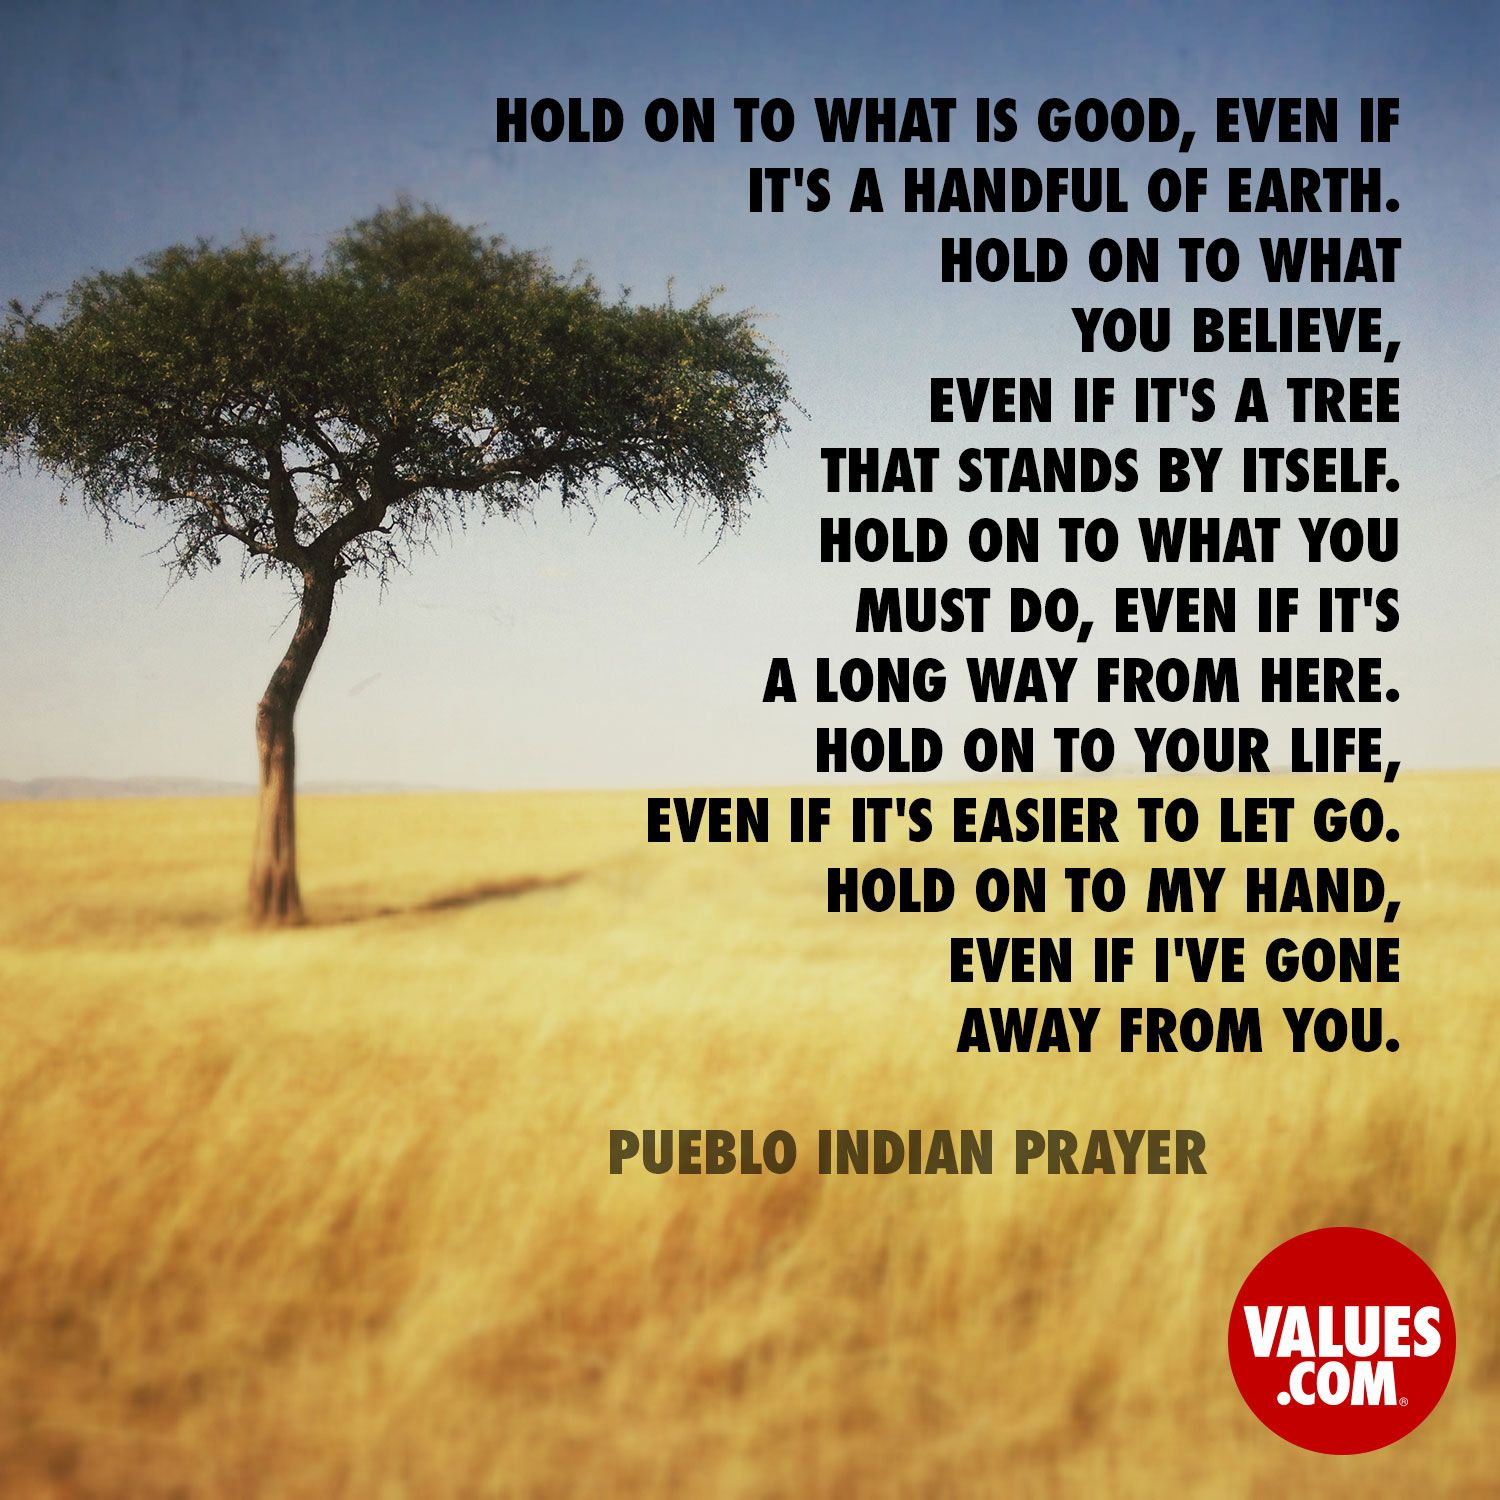 Inspirational Prayer Quotes: An Inspirational Quote By Pueblo Indian Prayer From Values